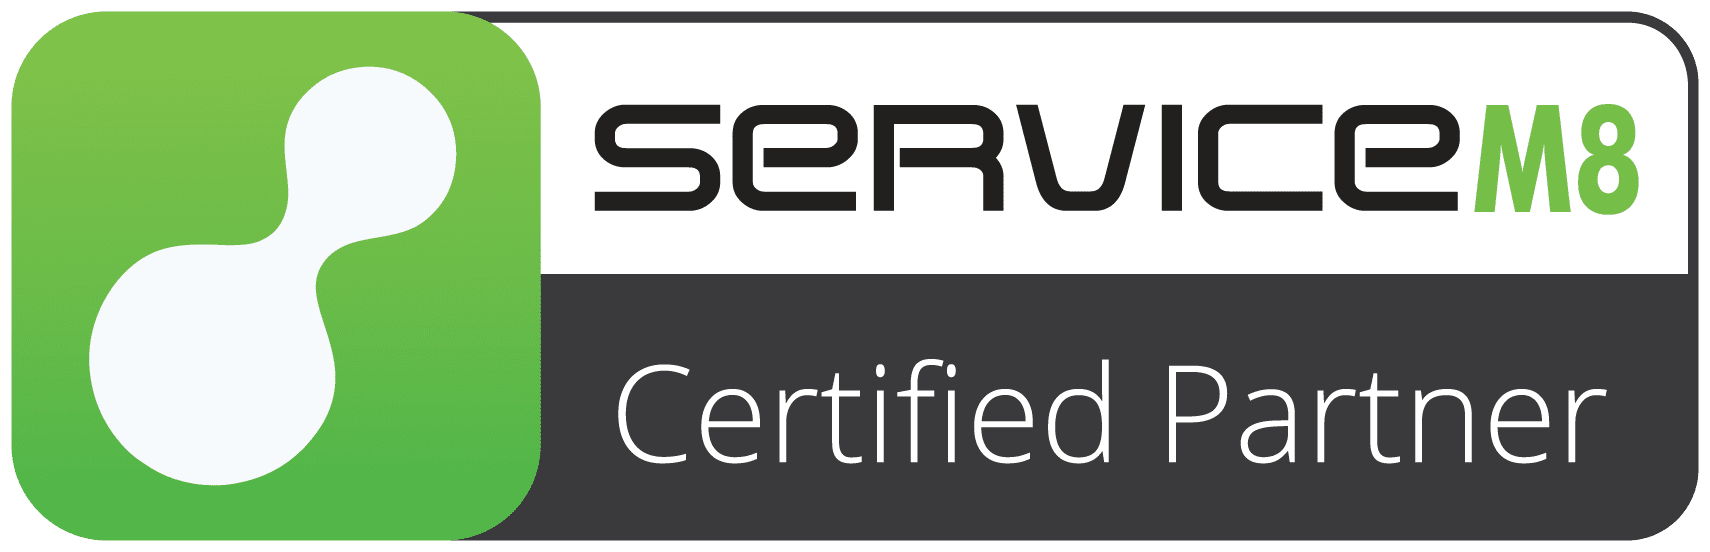 ServiceM8 Certified Partner